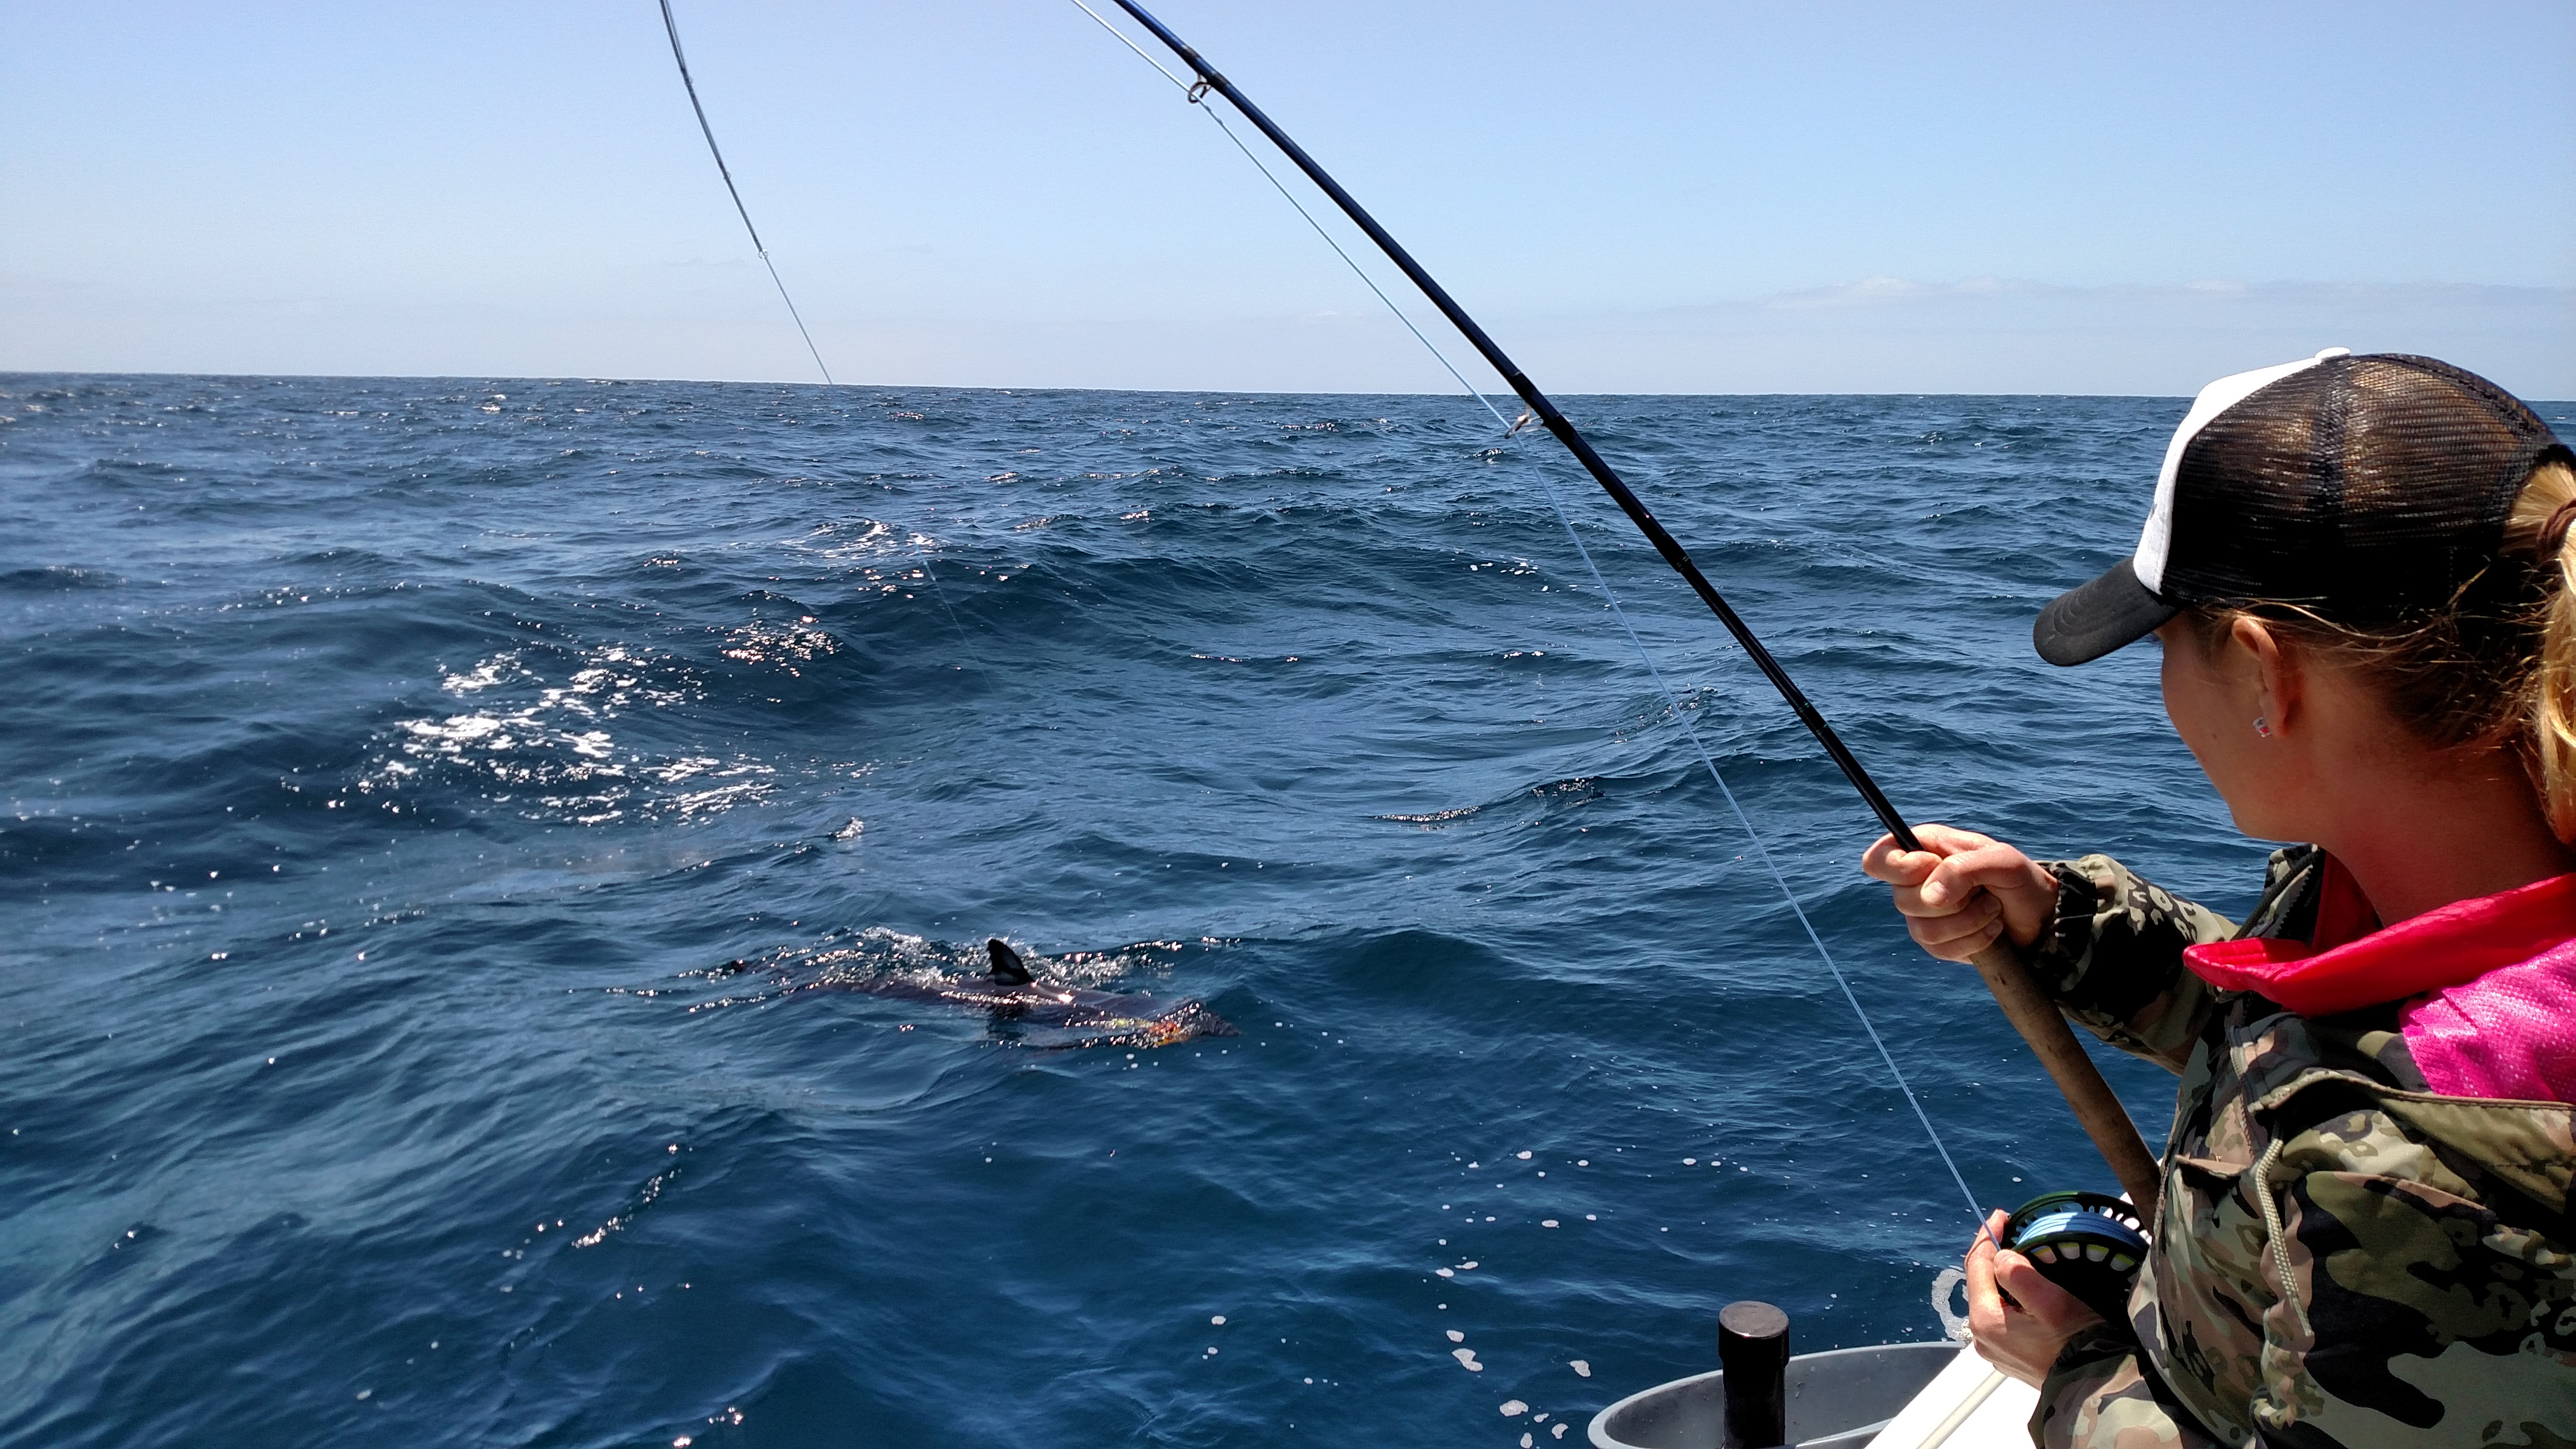 shark fishing is steady on the fly fishing charters